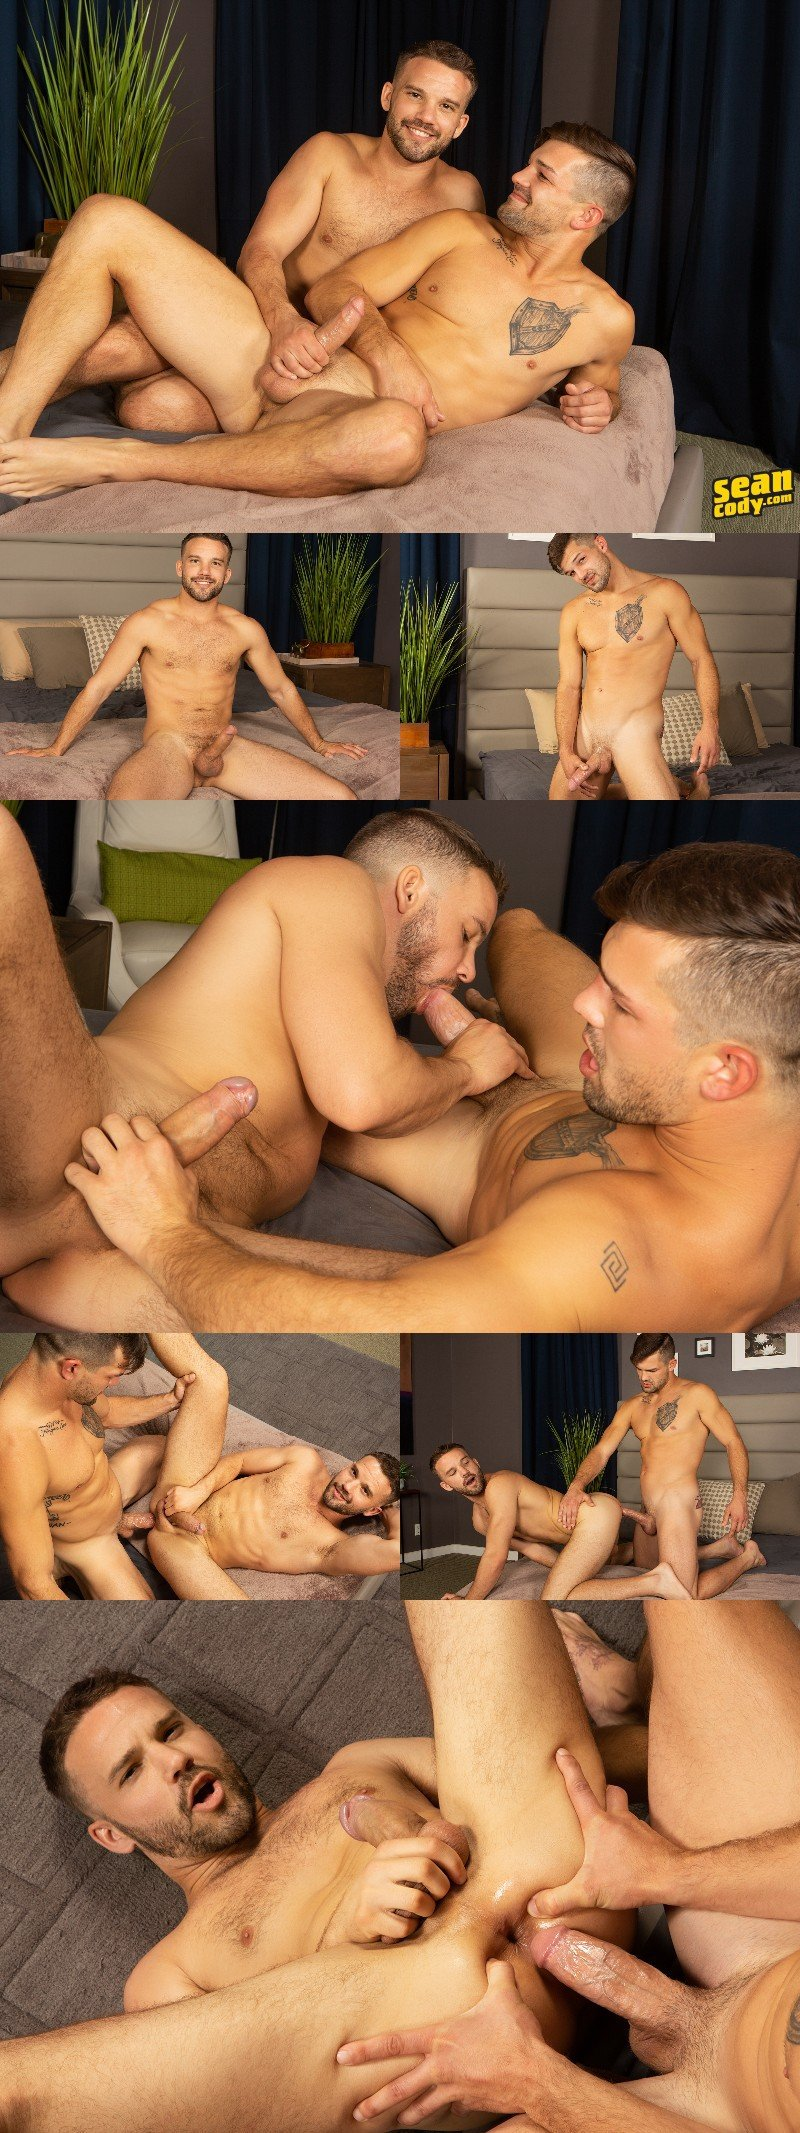 Brysen is Back For His Third Sean Cody Scene Since His Retirement